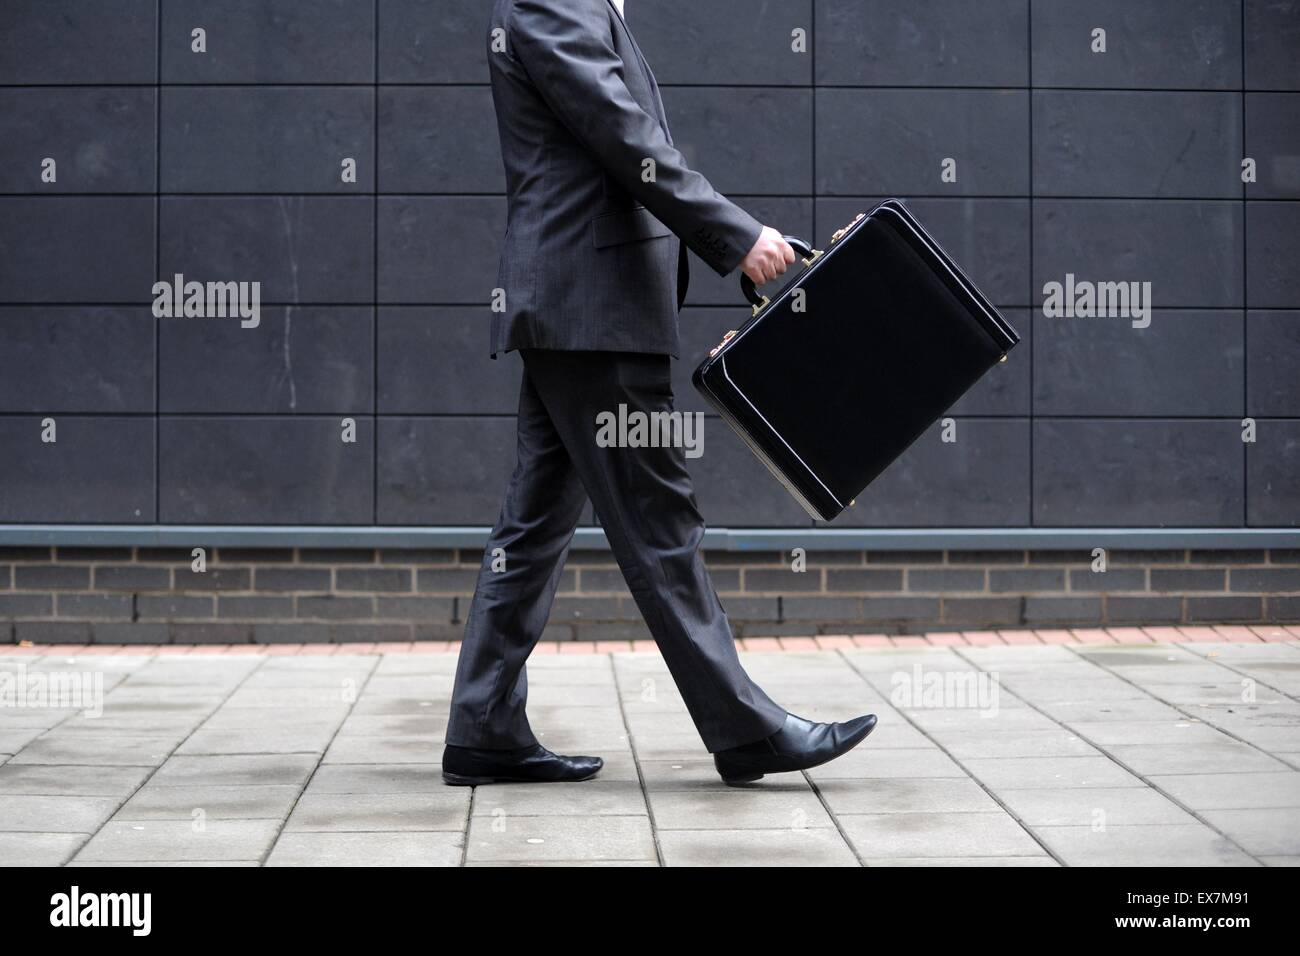 A business man carries a briefcase on the way to work at an office. - Stock Image